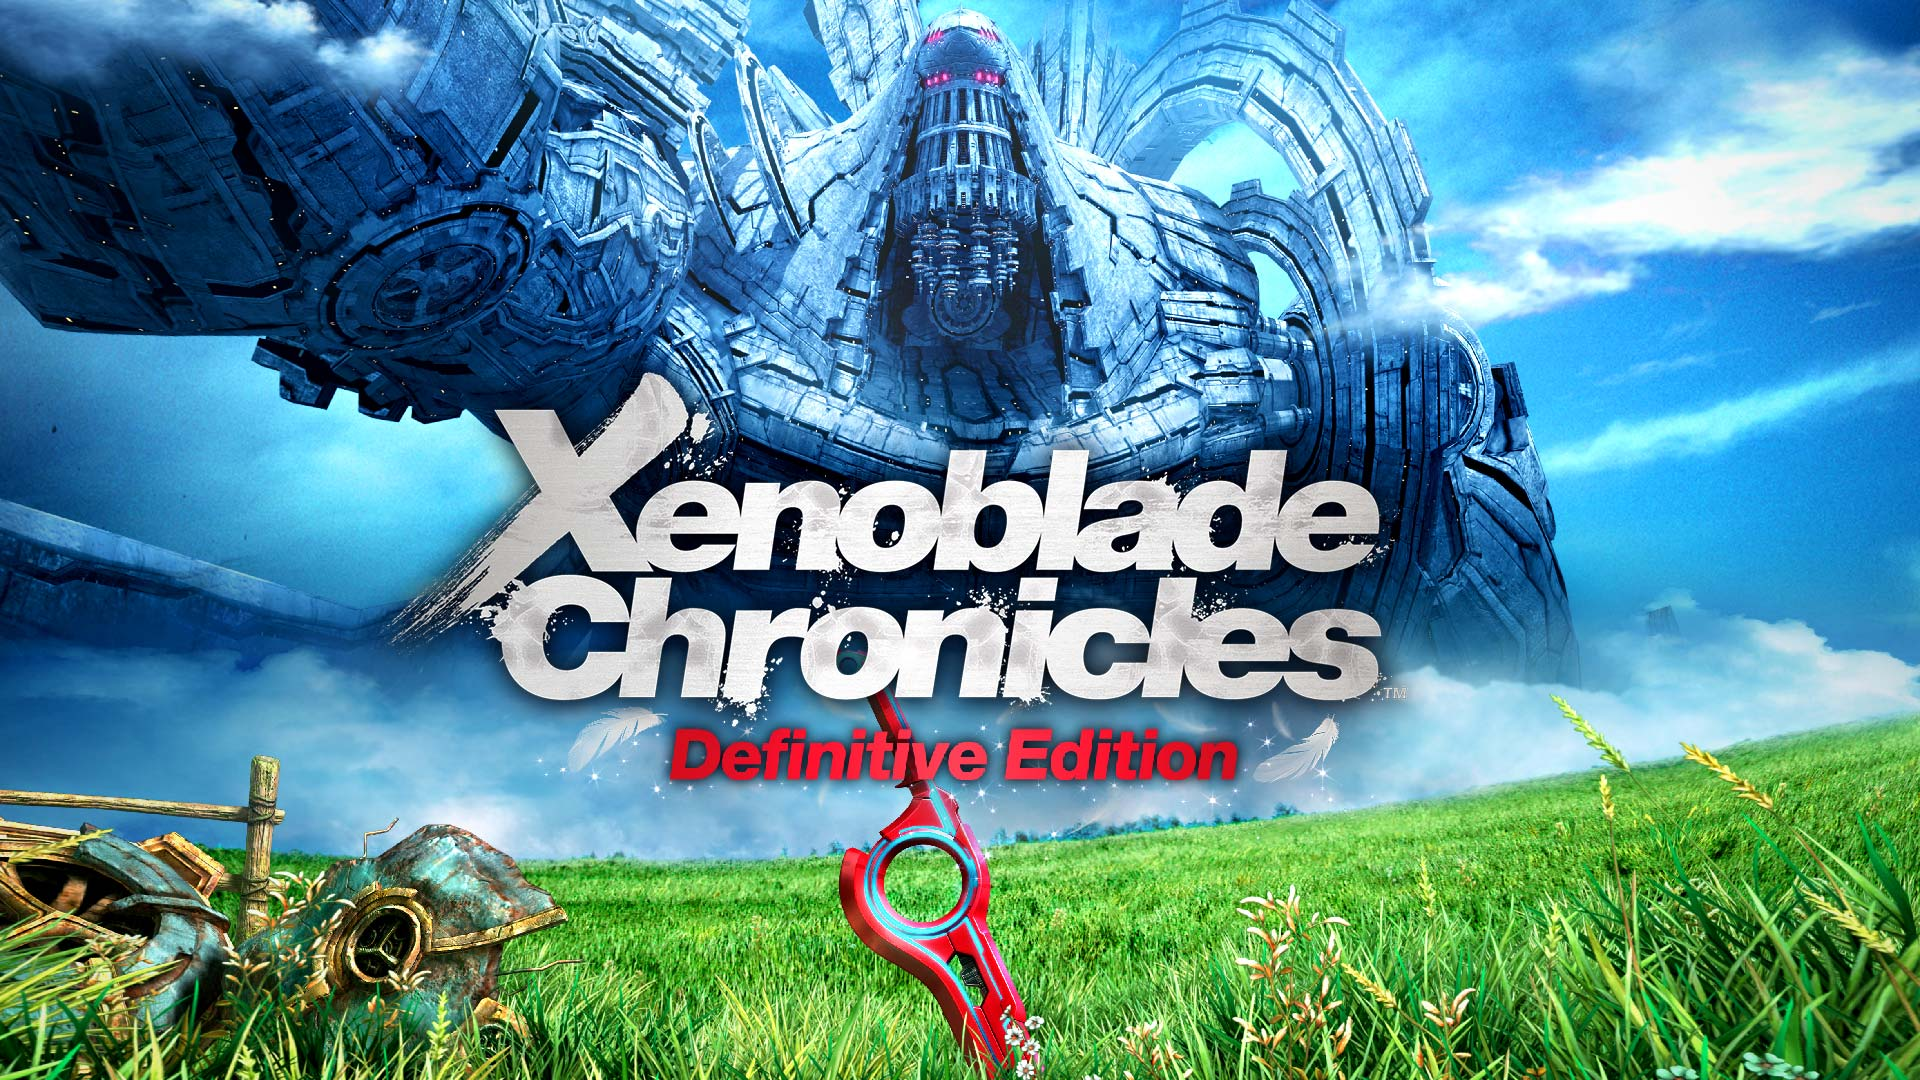 xenoblade chronicles, pass time